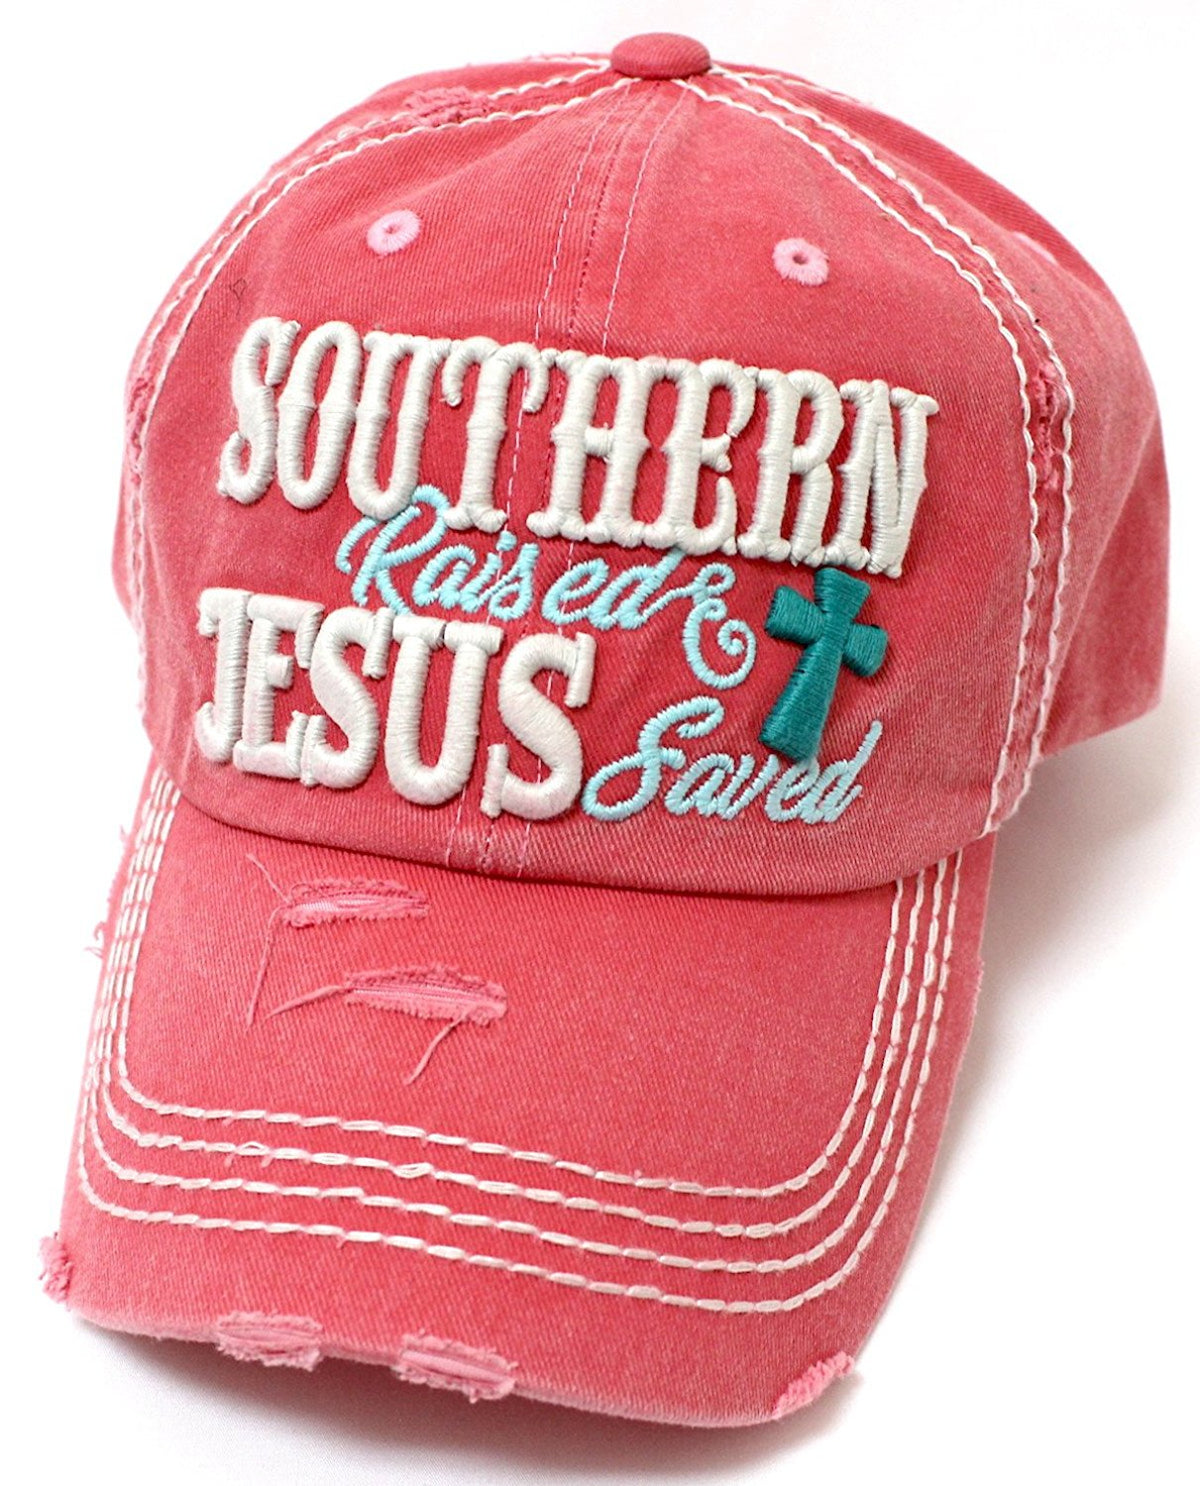 CAPS 'N VINTAGE Women's Southern Raised & Jesus Saved Cross Embroidery Hat - Caps 'N Vintage